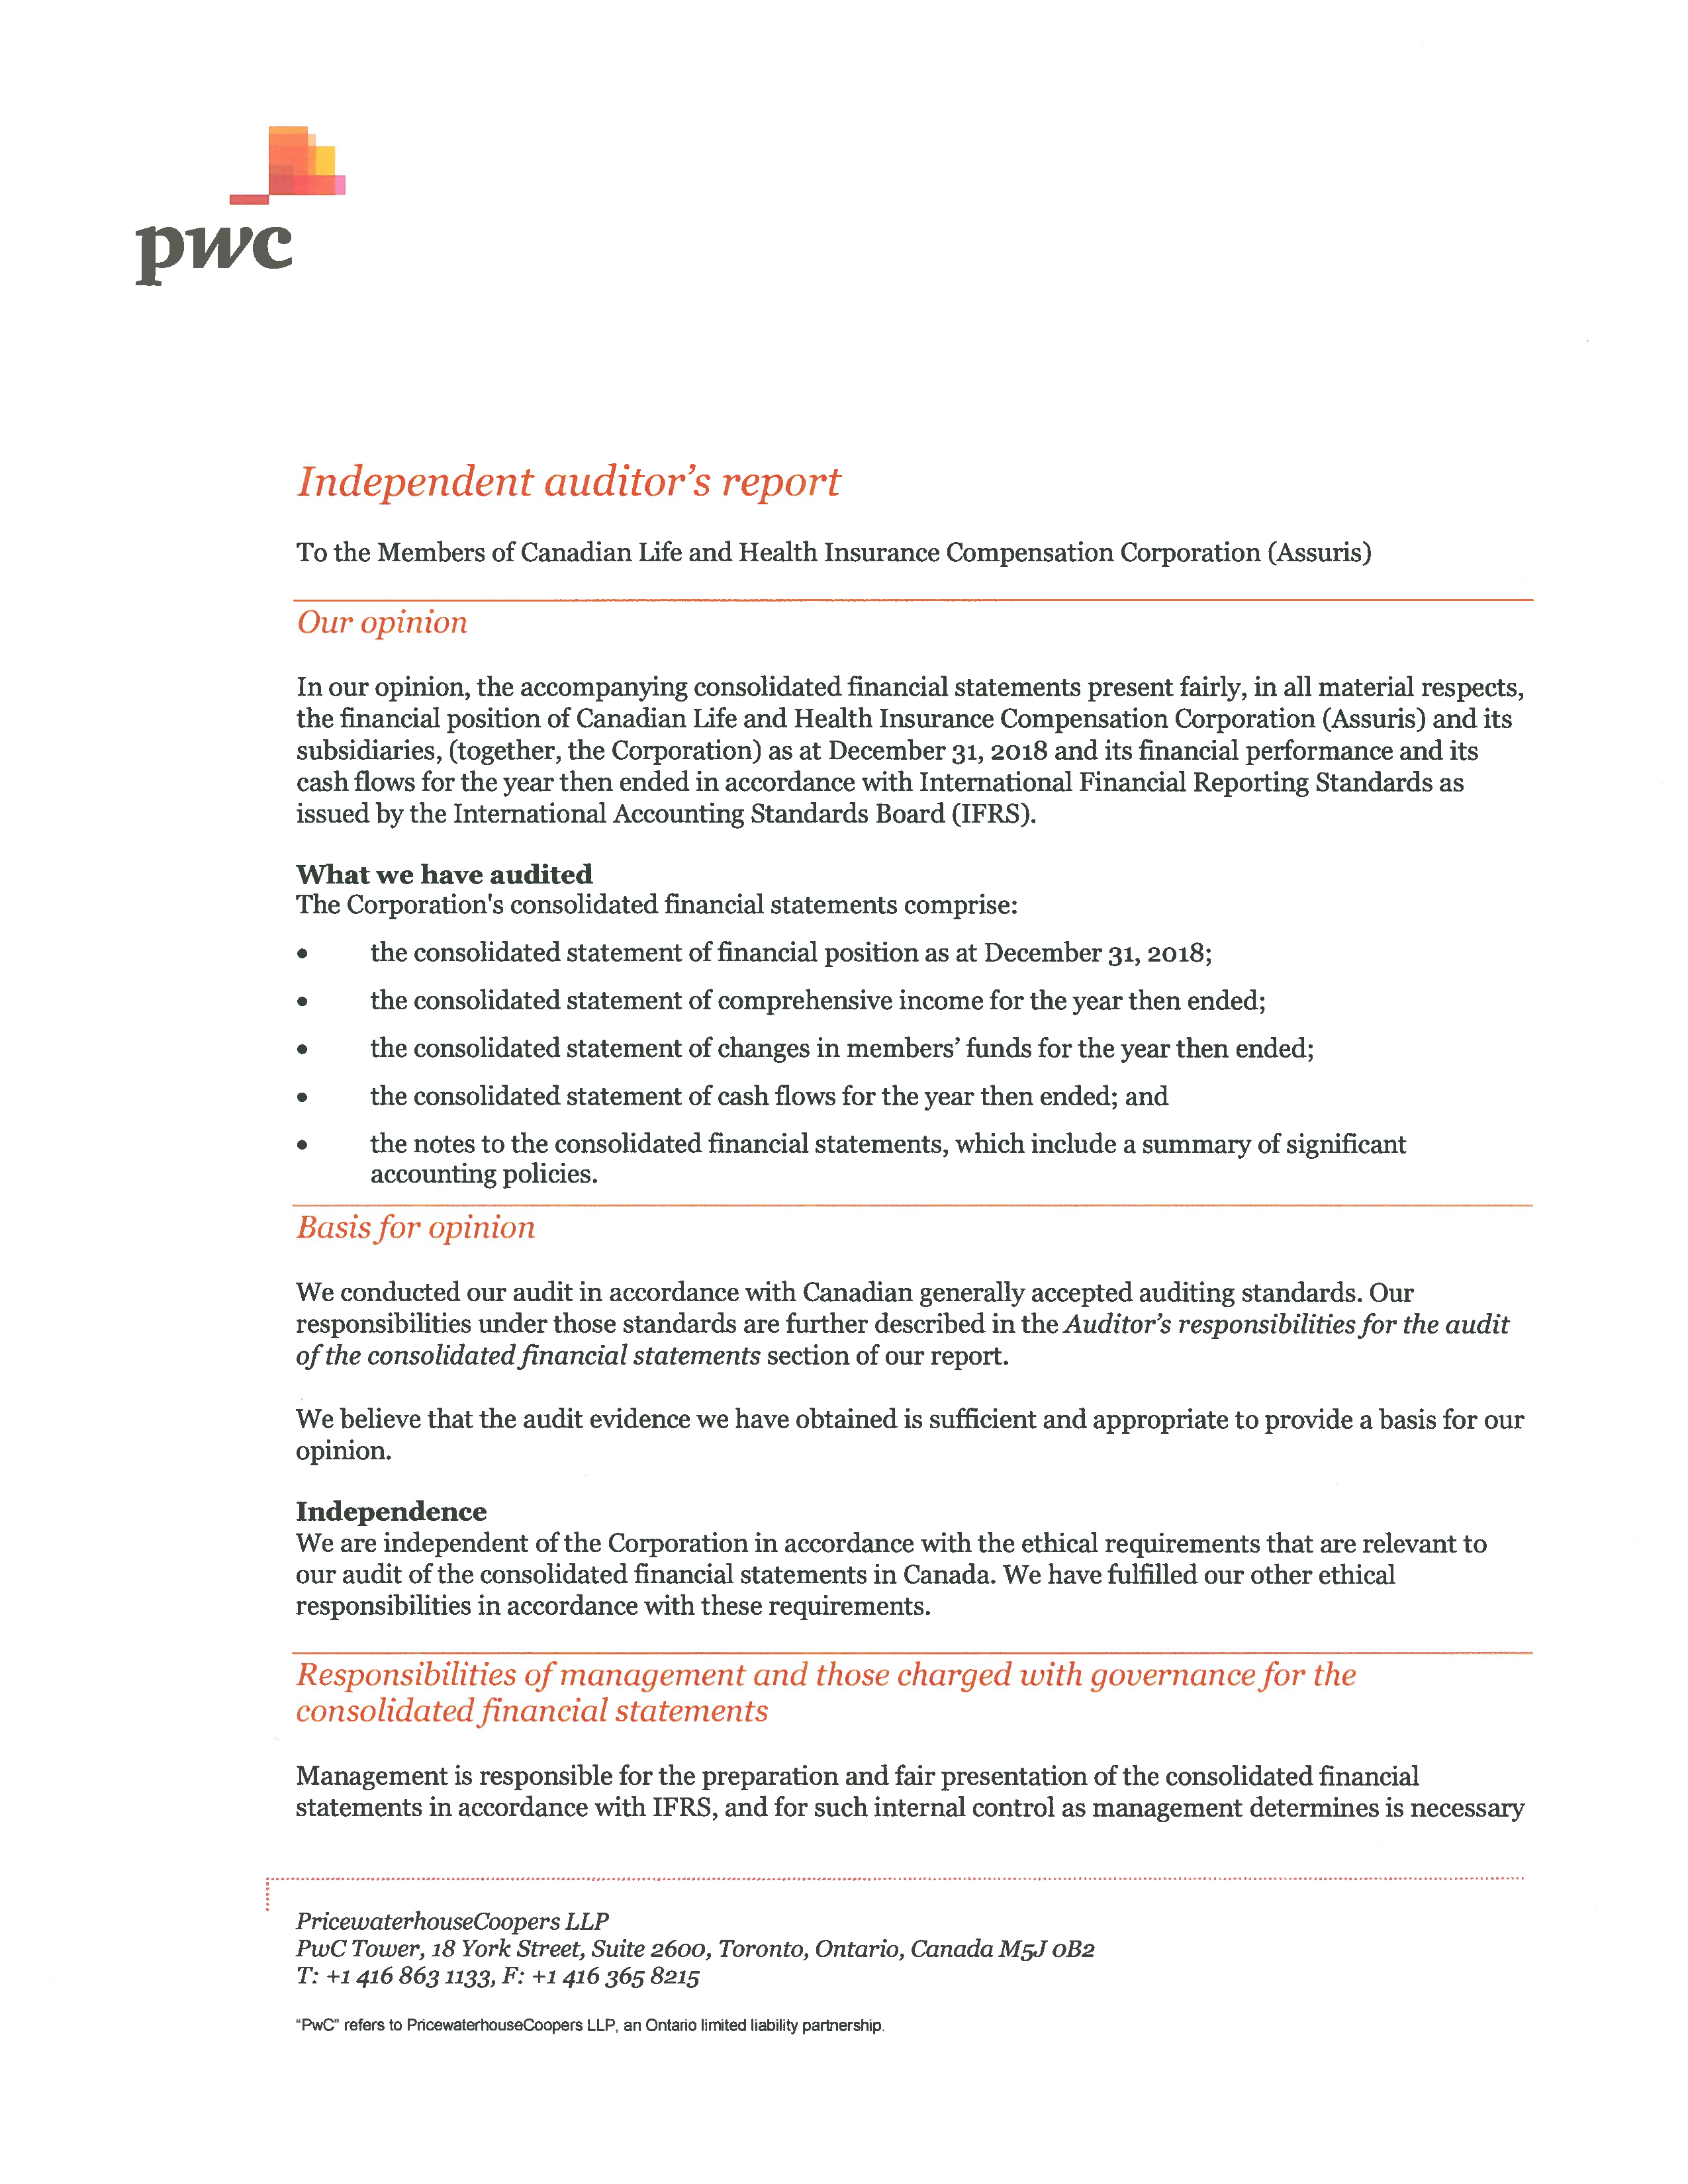 Independent Auditors' Report page 1